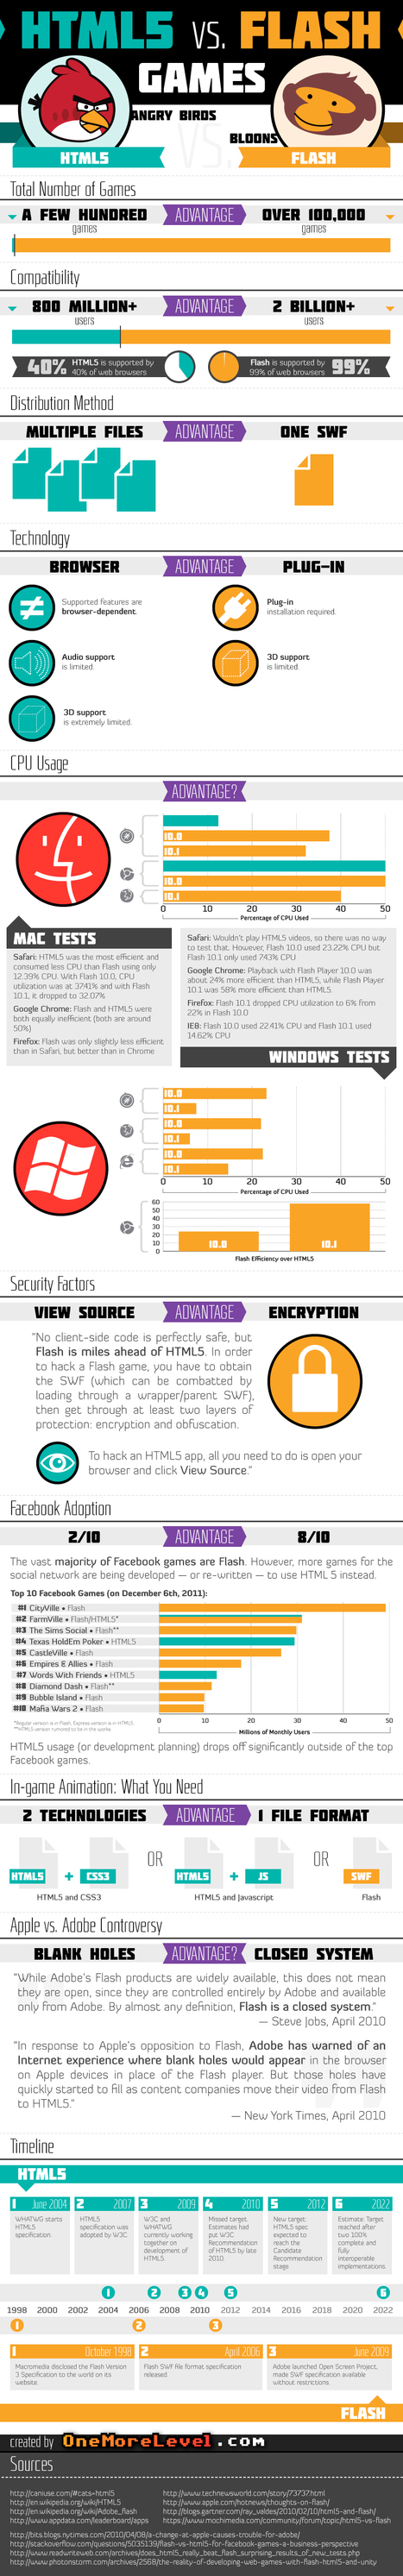 Infographic: Flash Still Bests HTML5 by Most Measures | Mobile App Development | Scoop.it